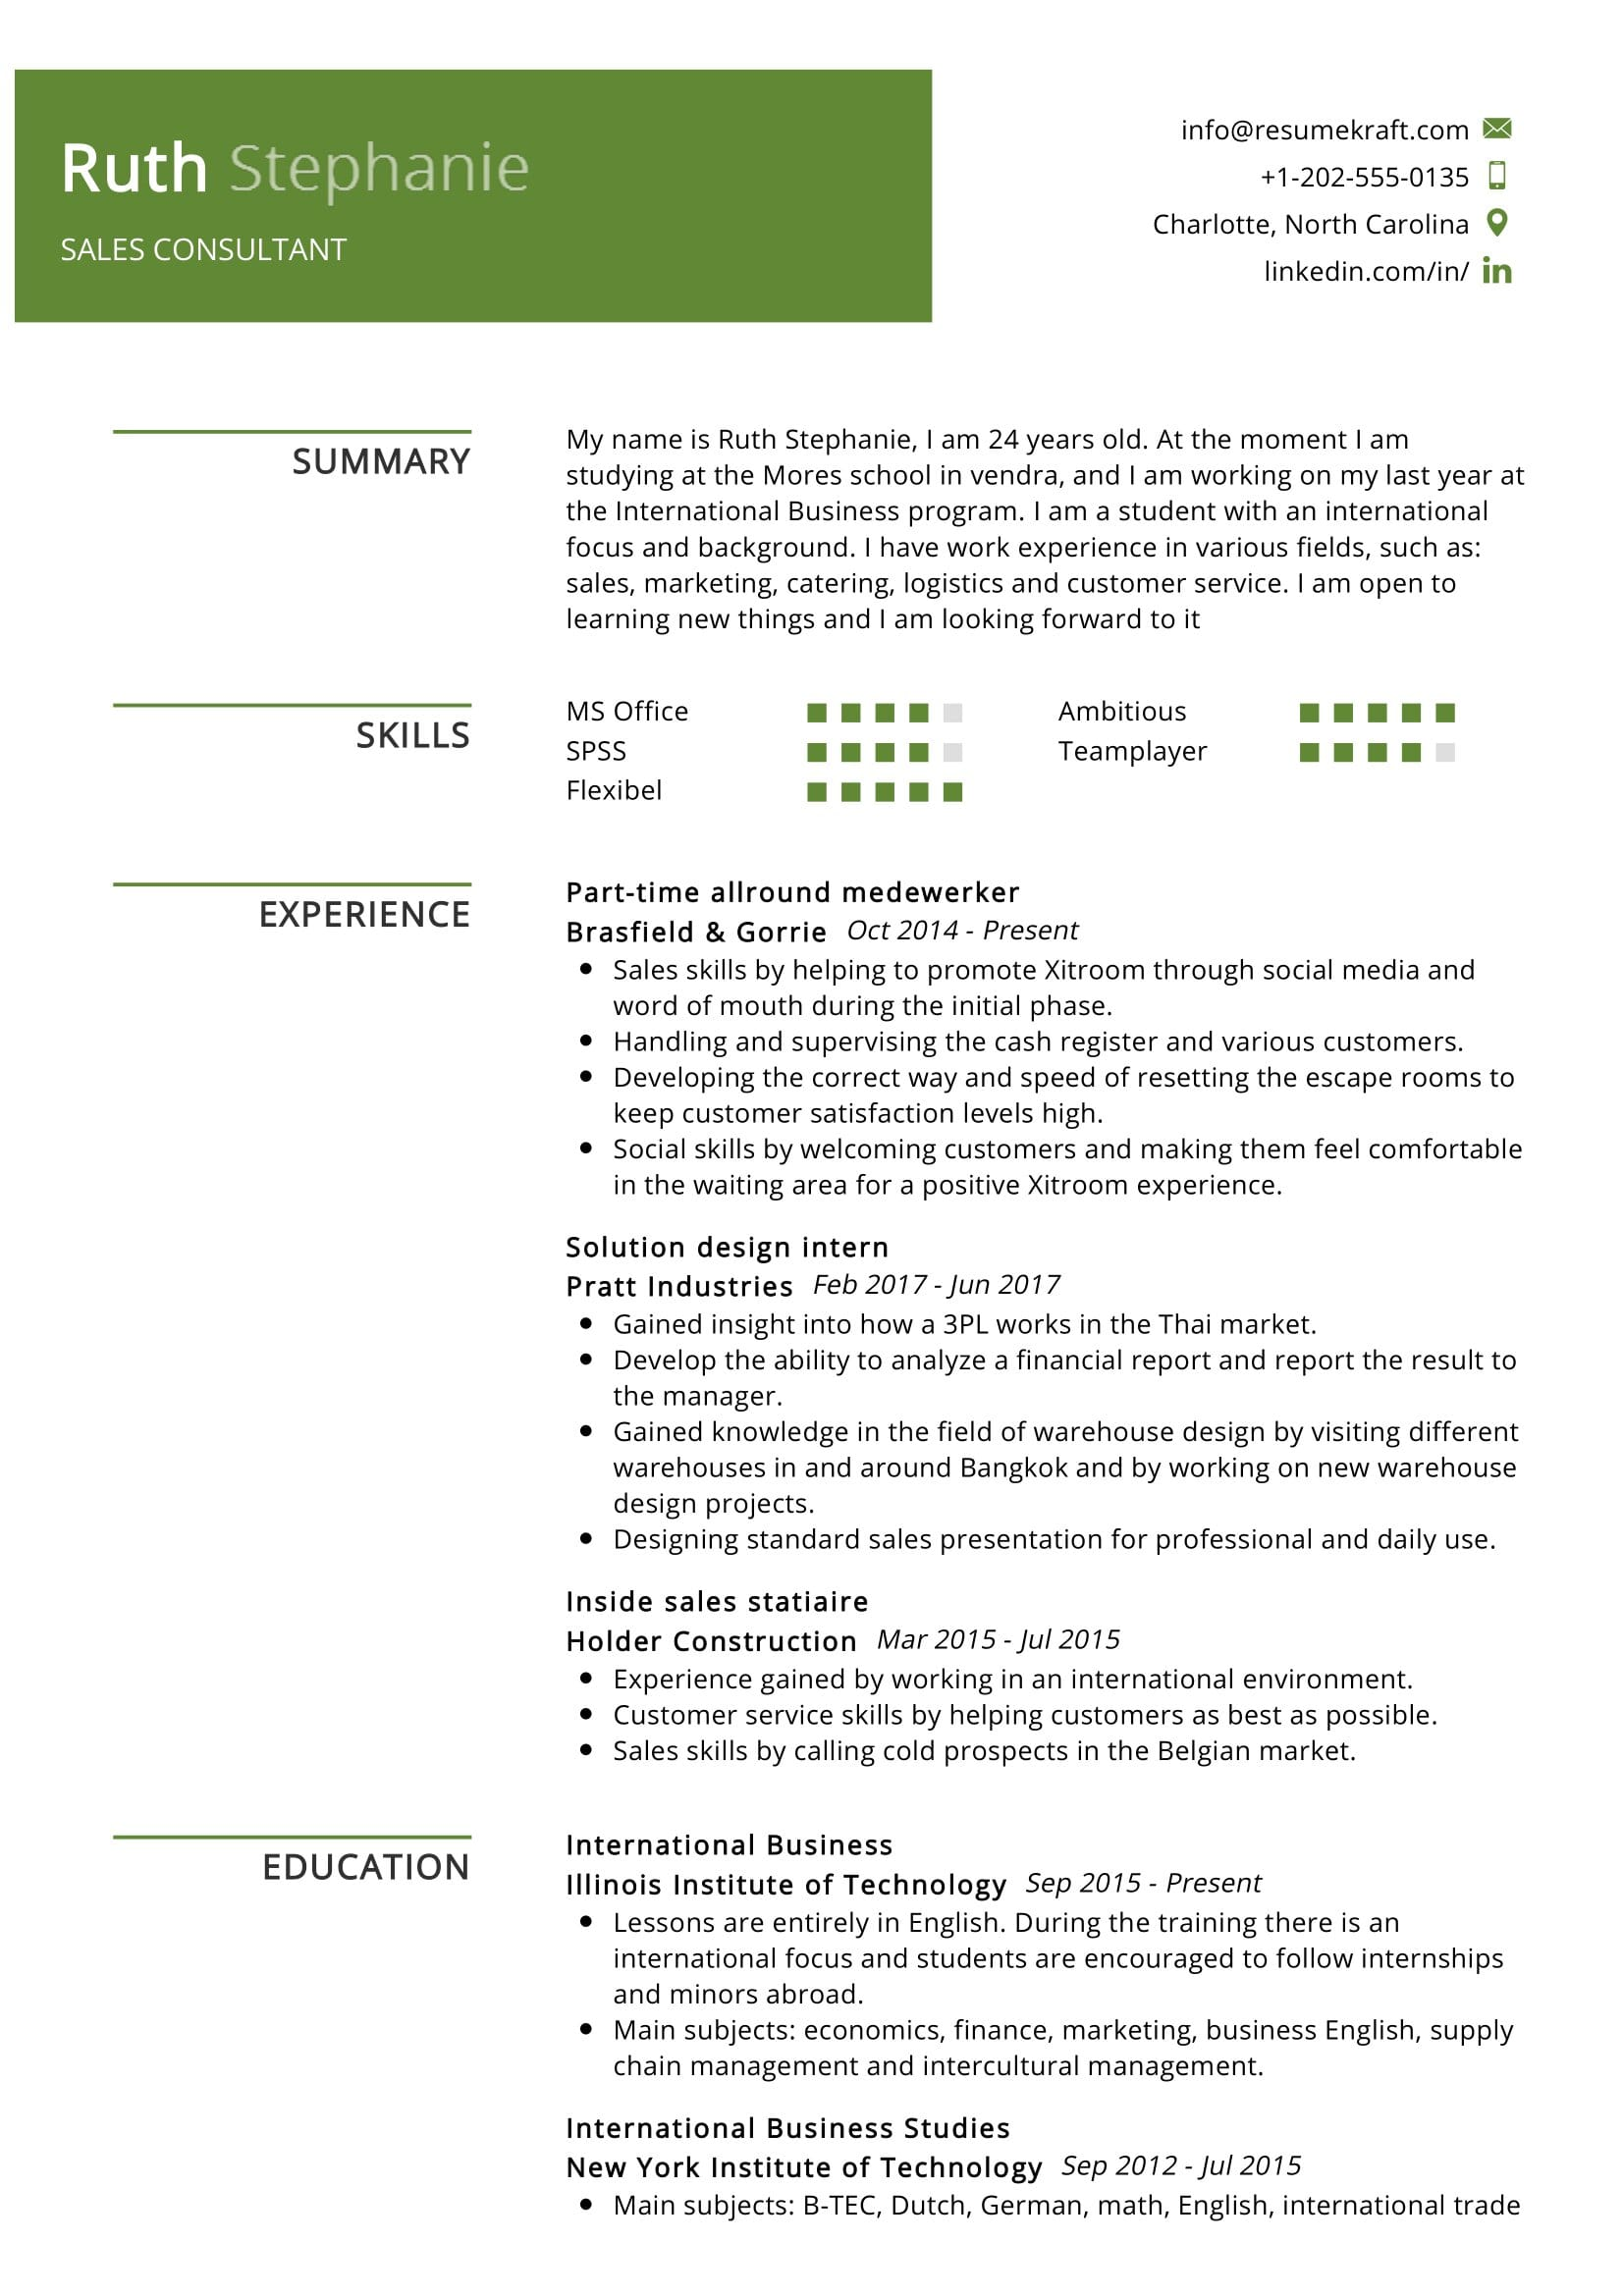 Best sales consultant resume graphs in research papers